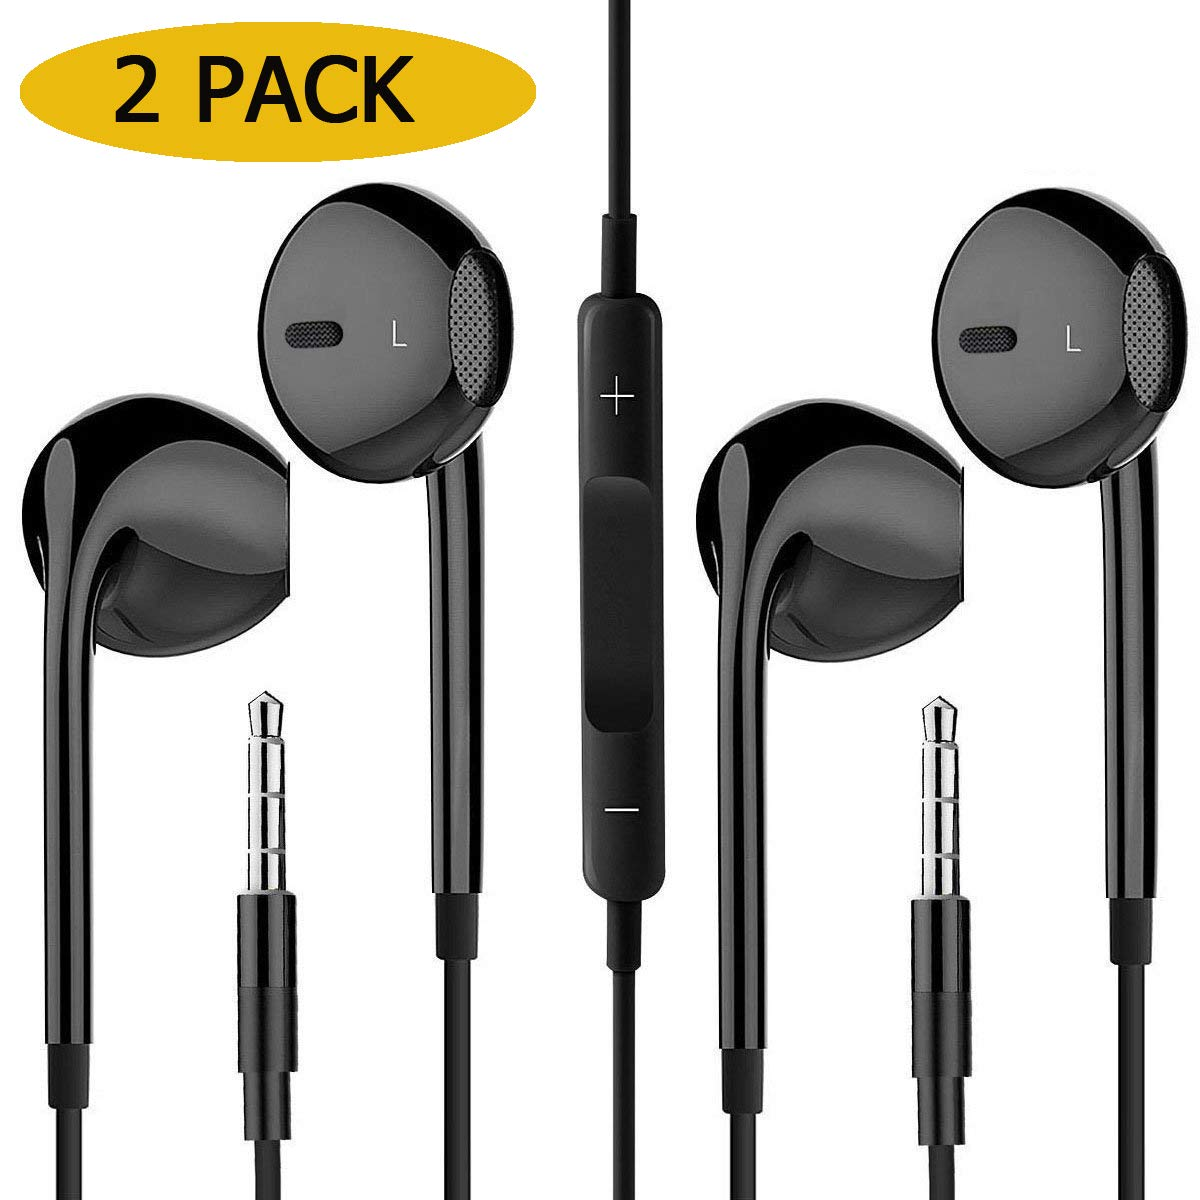 VOWSVOWS 2-Pack Premium Earphones/Earbuds/Headphones with Stereo Mic&Remote Control Compatible iPhone iPad iPod Samsung Galaxy and More Android Smartphones Compatible with 3.5 mm Headphone Black